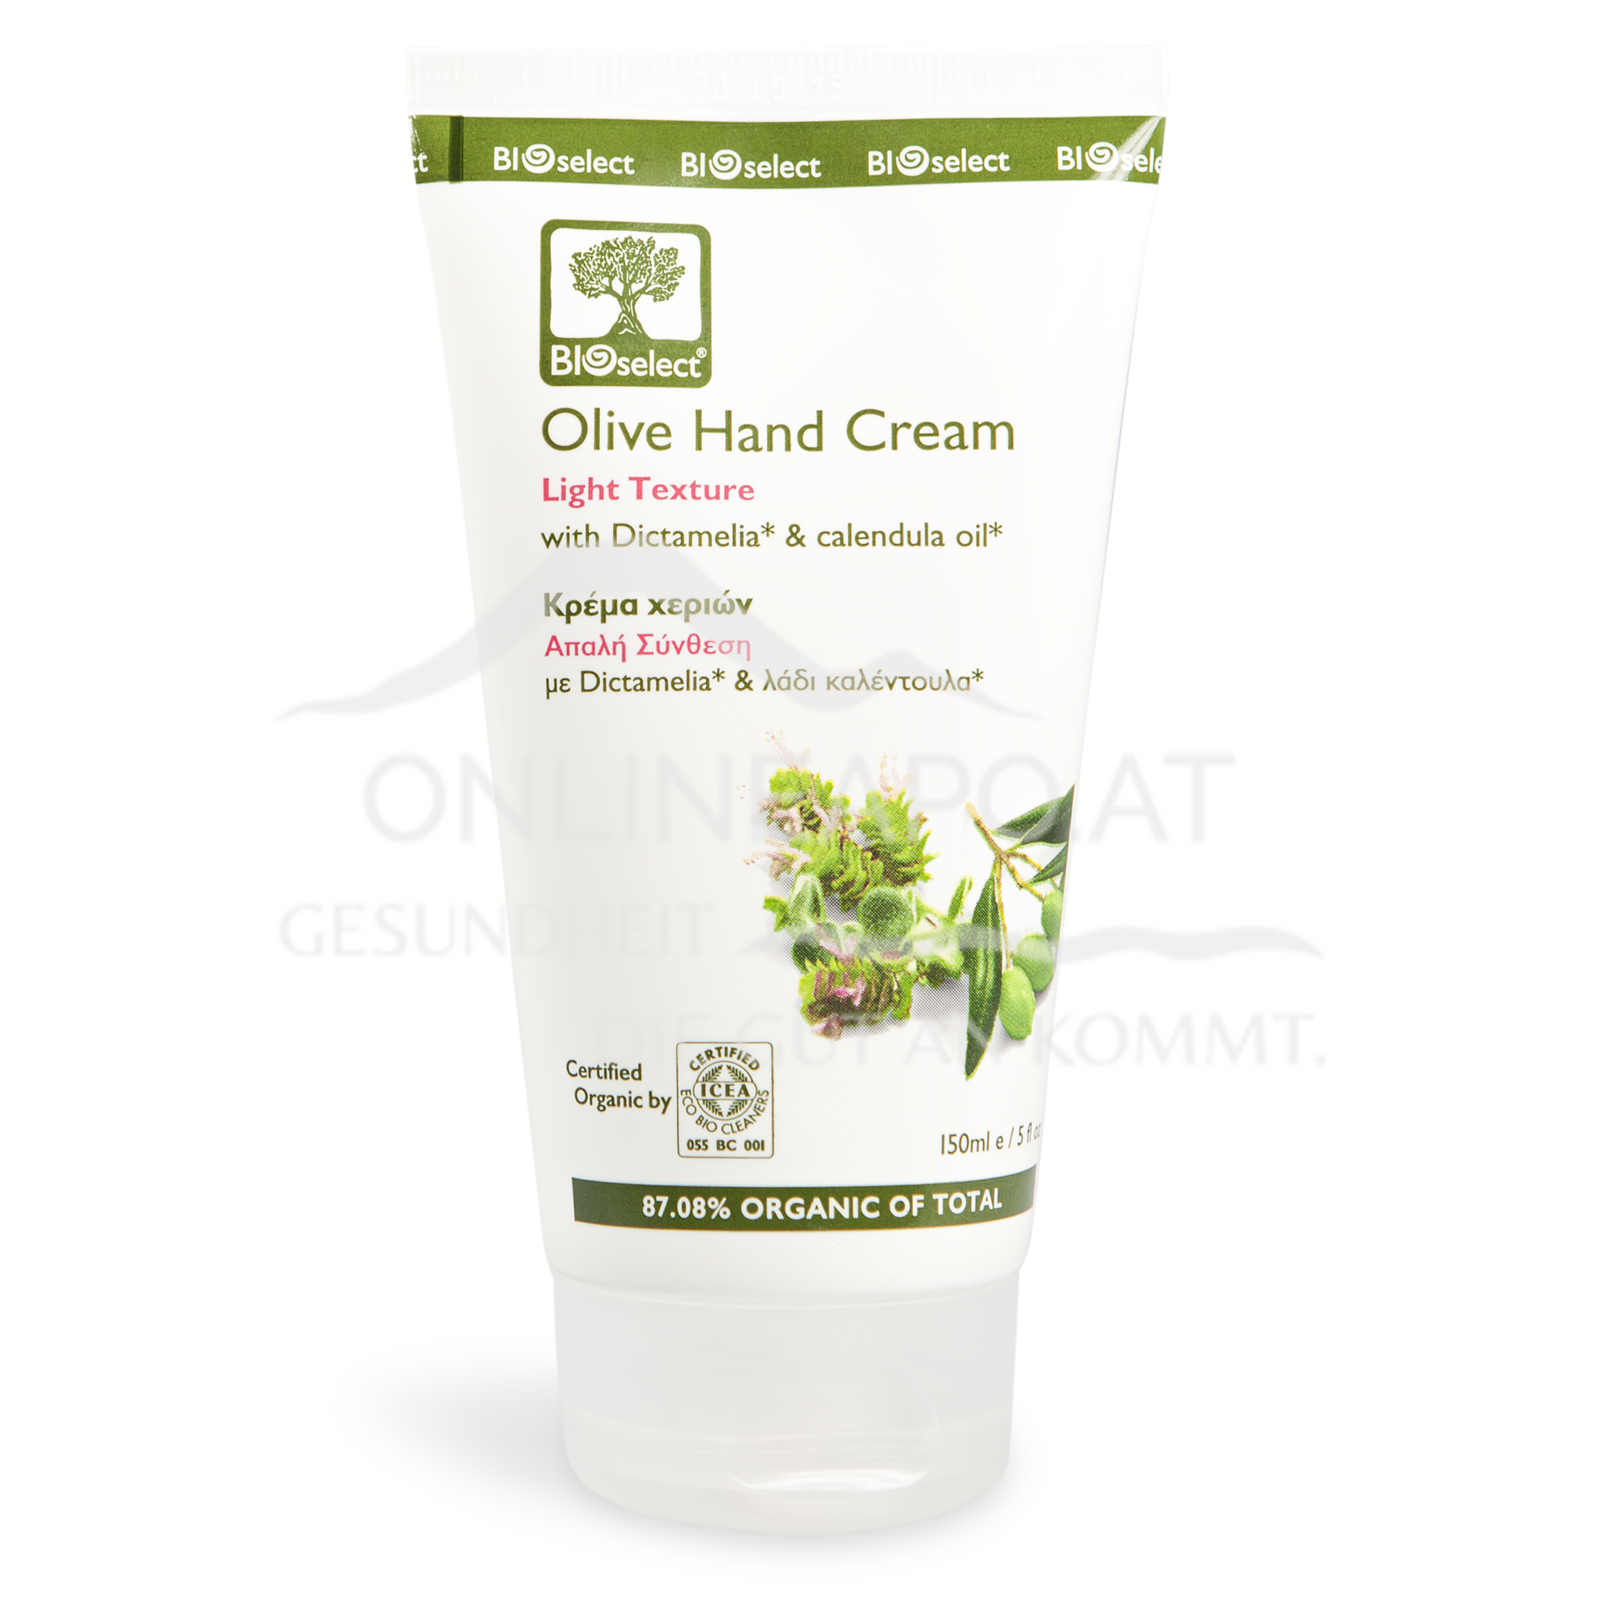 Bioselect Olive Hand Cream Light Texture